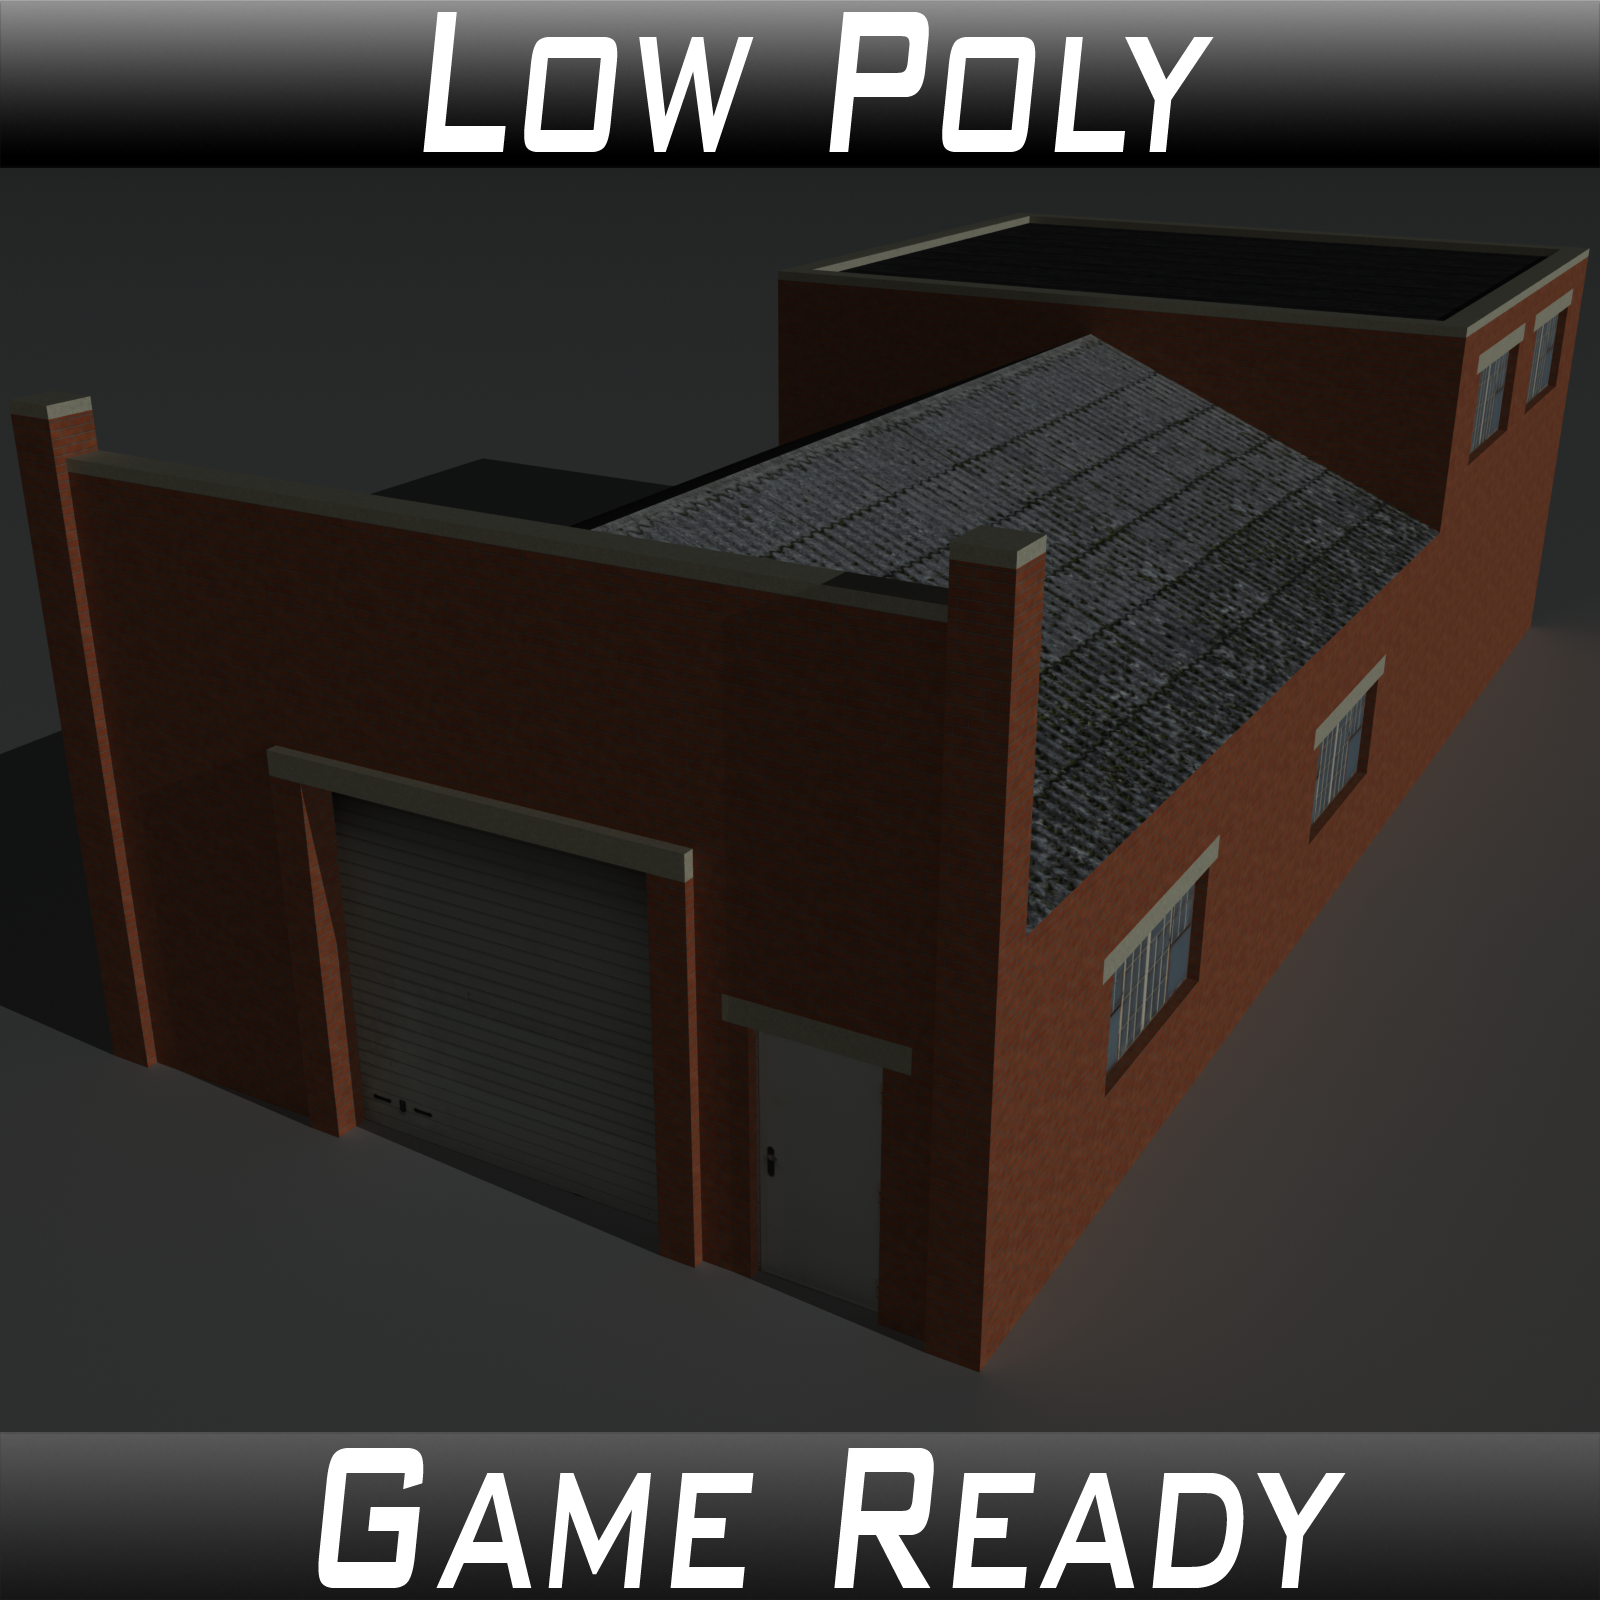 Low Poly Factory Building 32 - Extended Licence